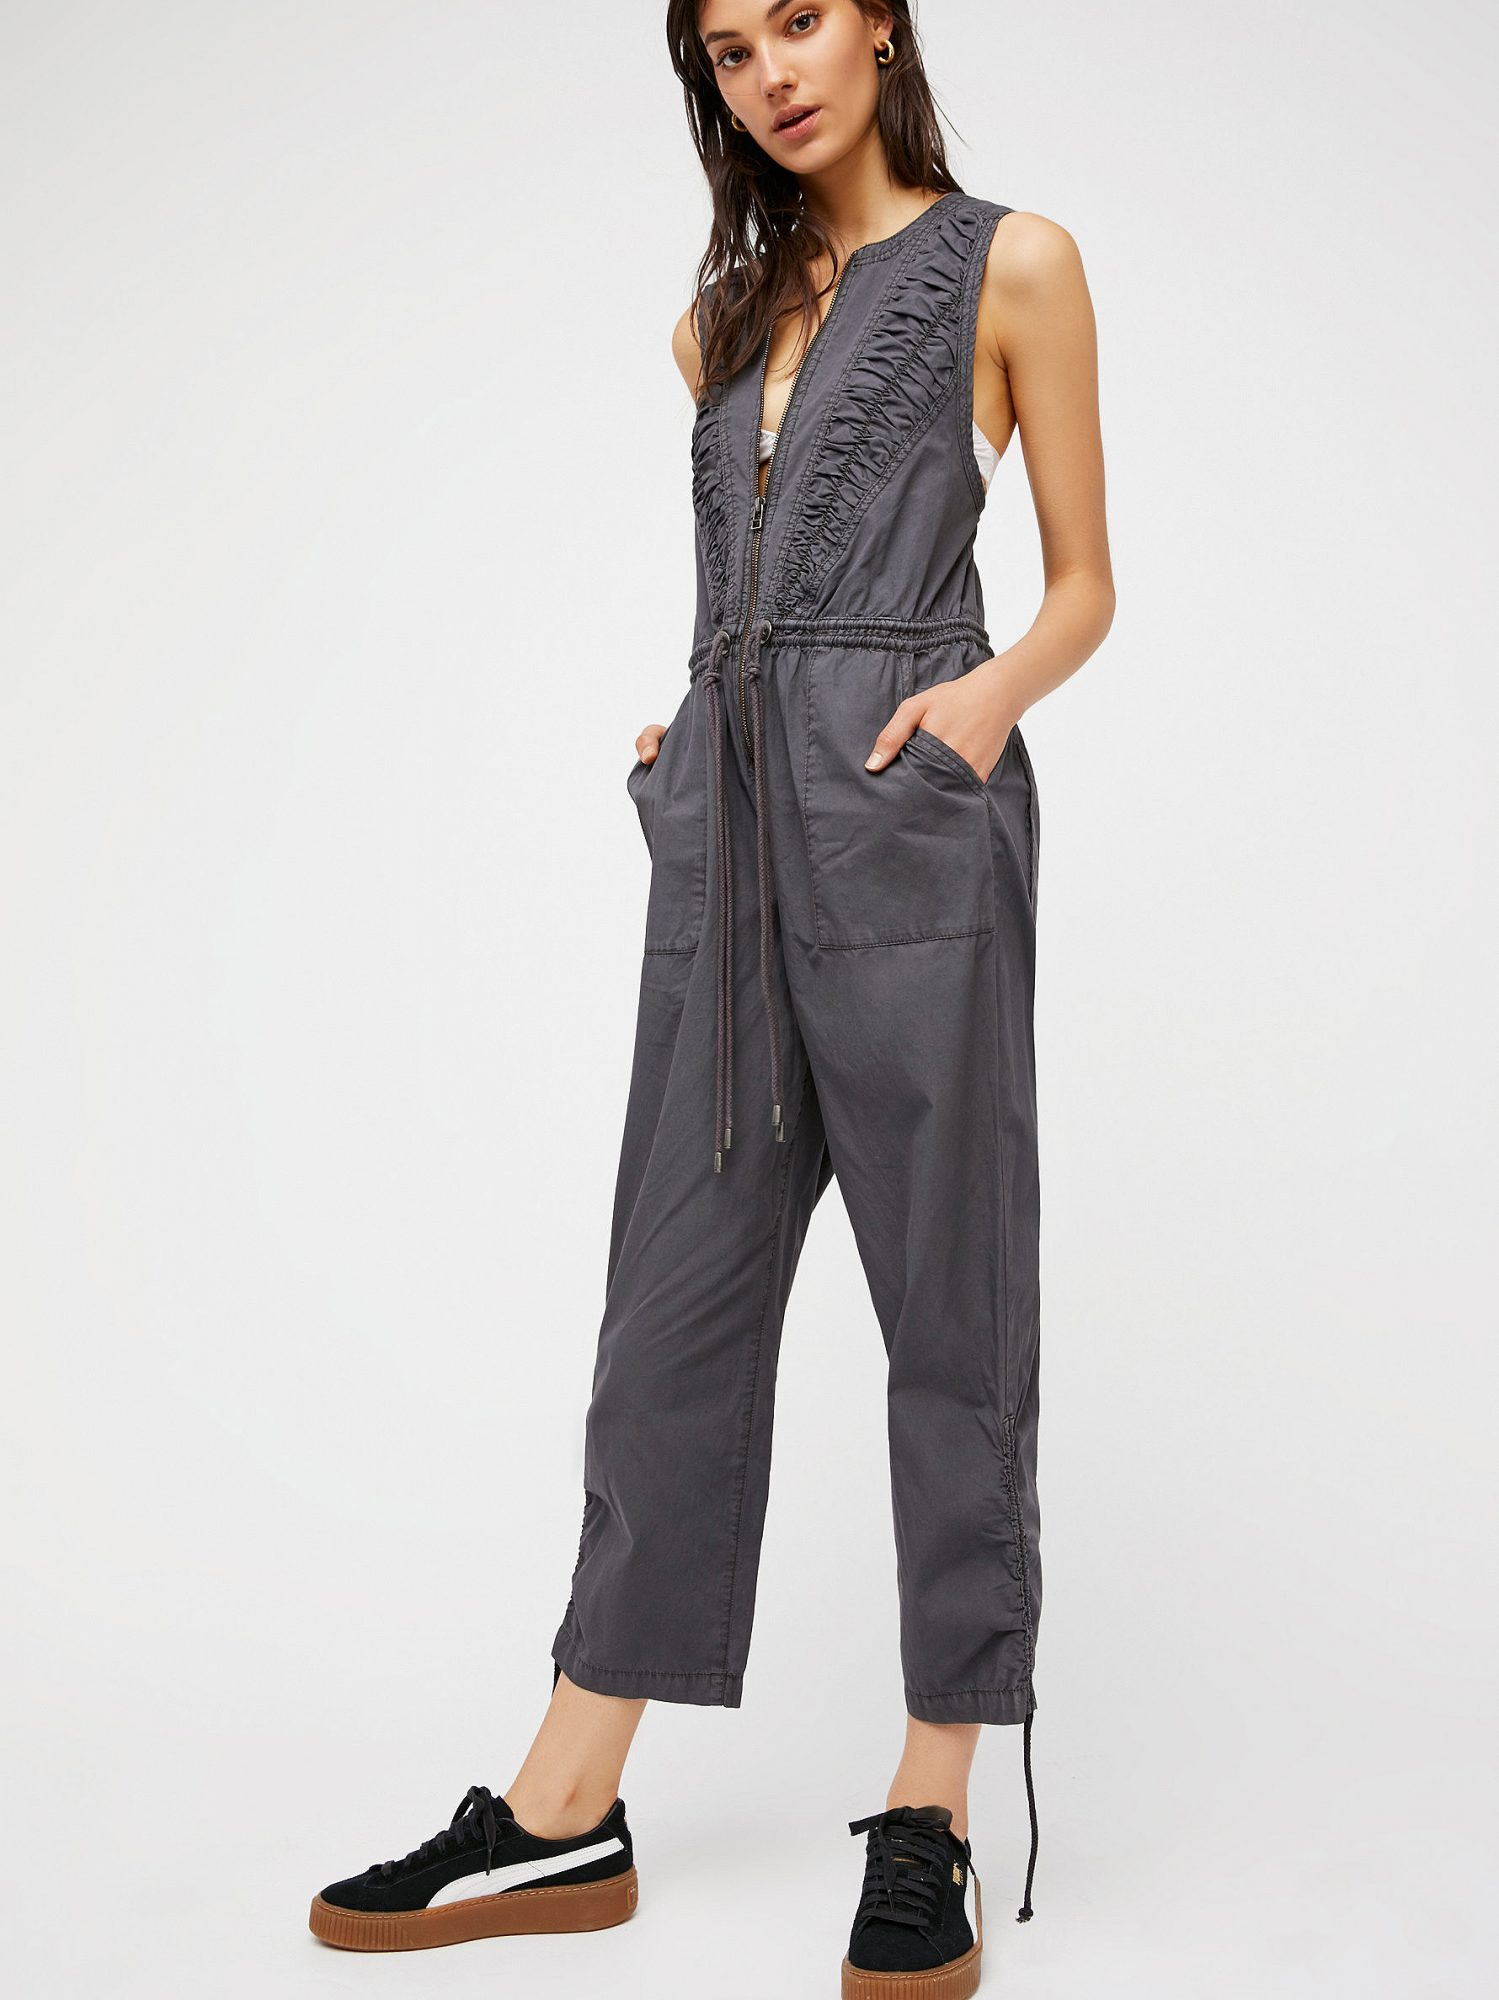 free-people-jumpsuit